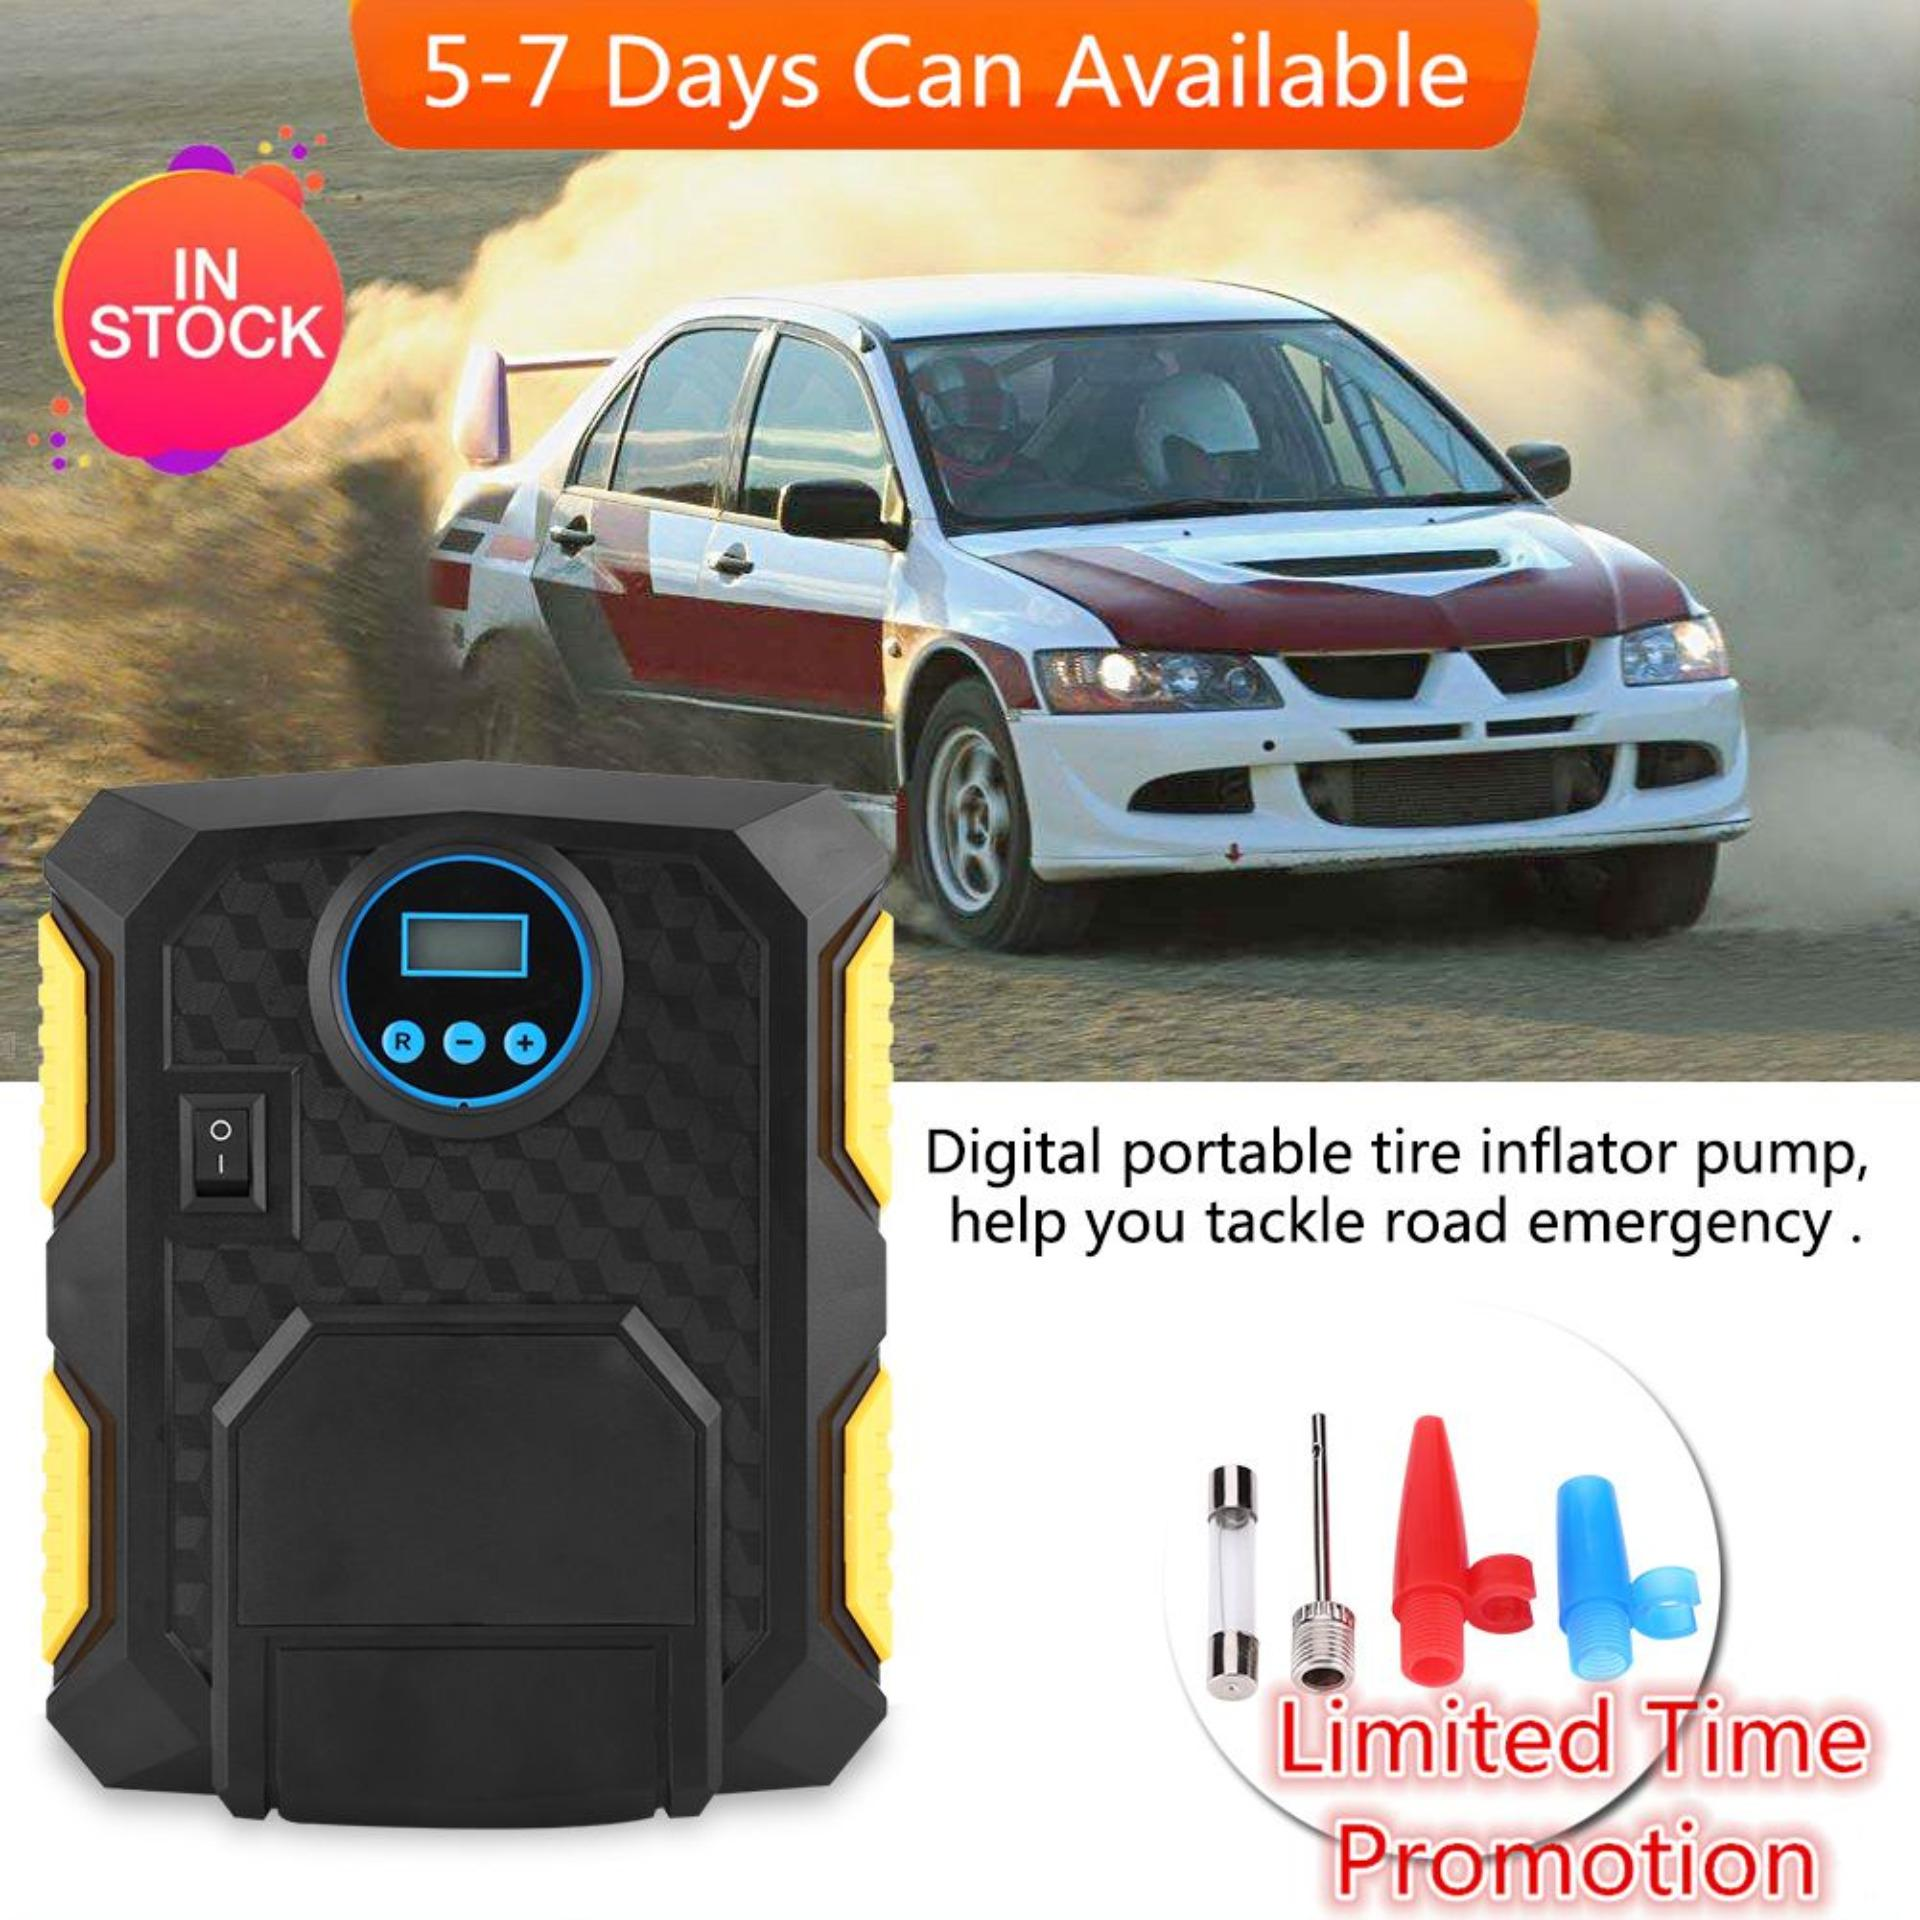 Dc 12v Digital Portable Car Tire Inflator Pump Air Compressor 150psi For Cars Balls Bikes - Intl By 1buycart.